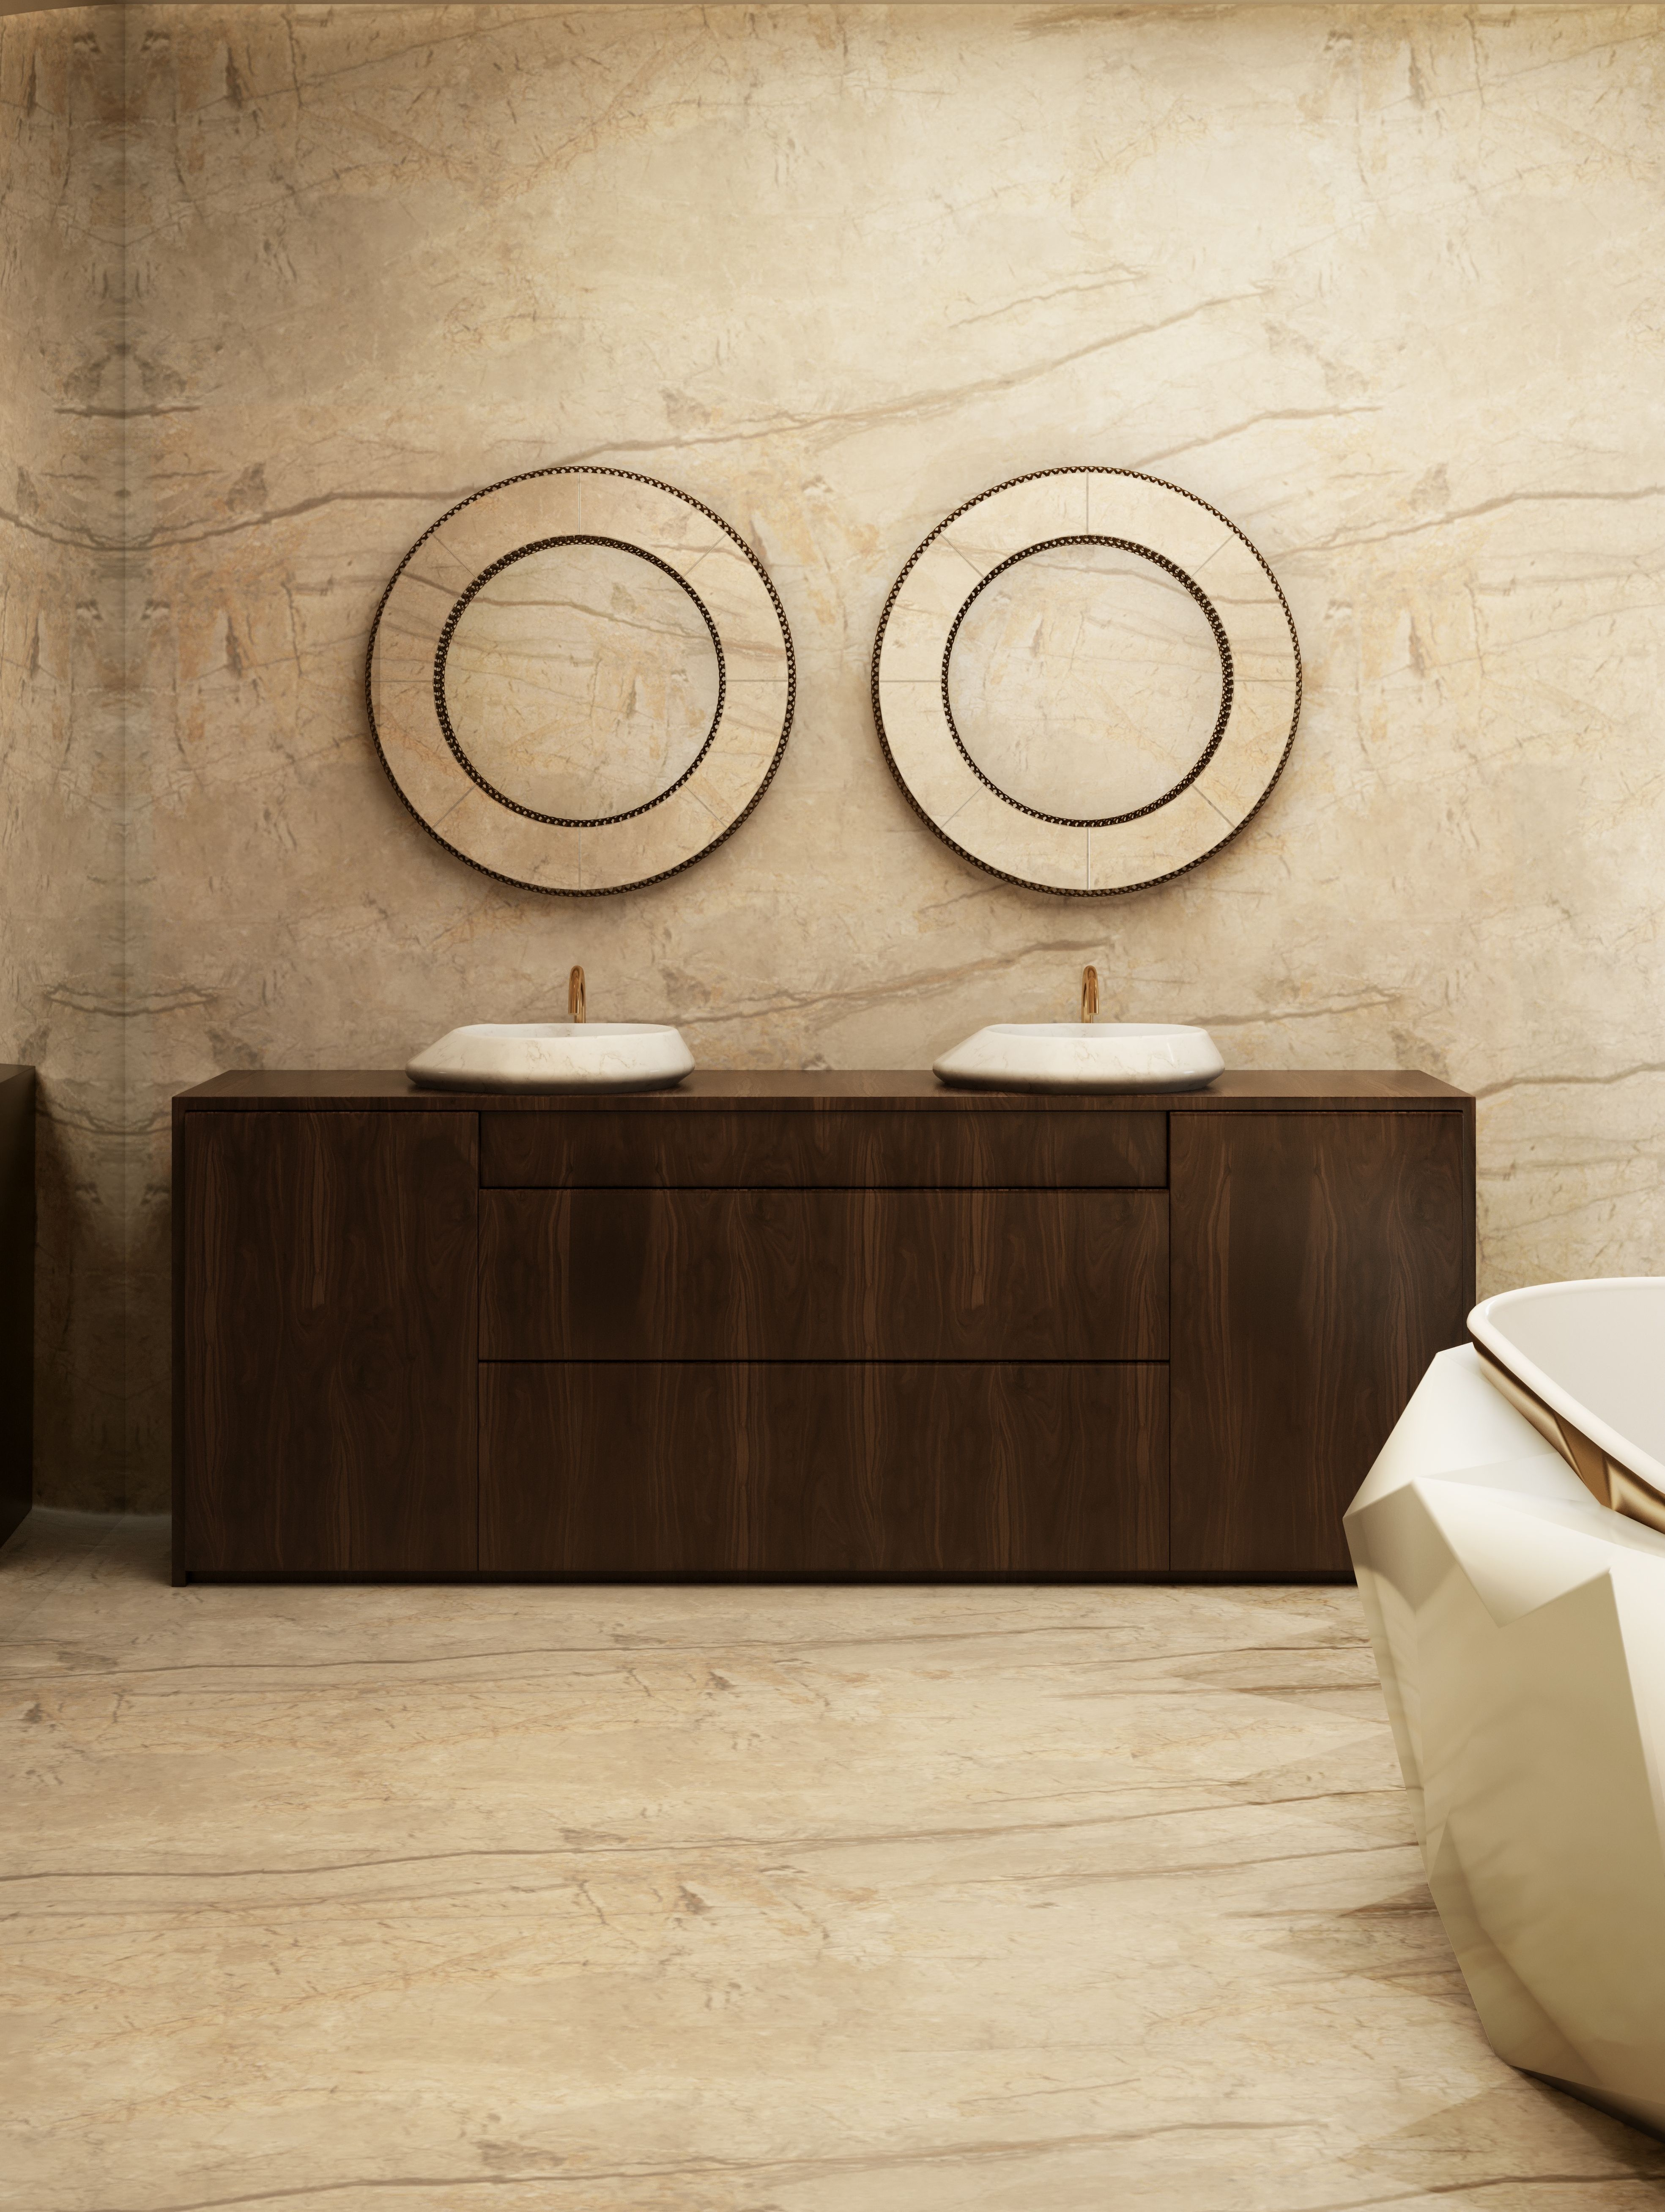 Scandinavian Style Meets Luxury Bathrooms scandinavian style Scandinavian Style Meets Luxury Bathrooms luxury bathroom with white and wood accents with ato collection